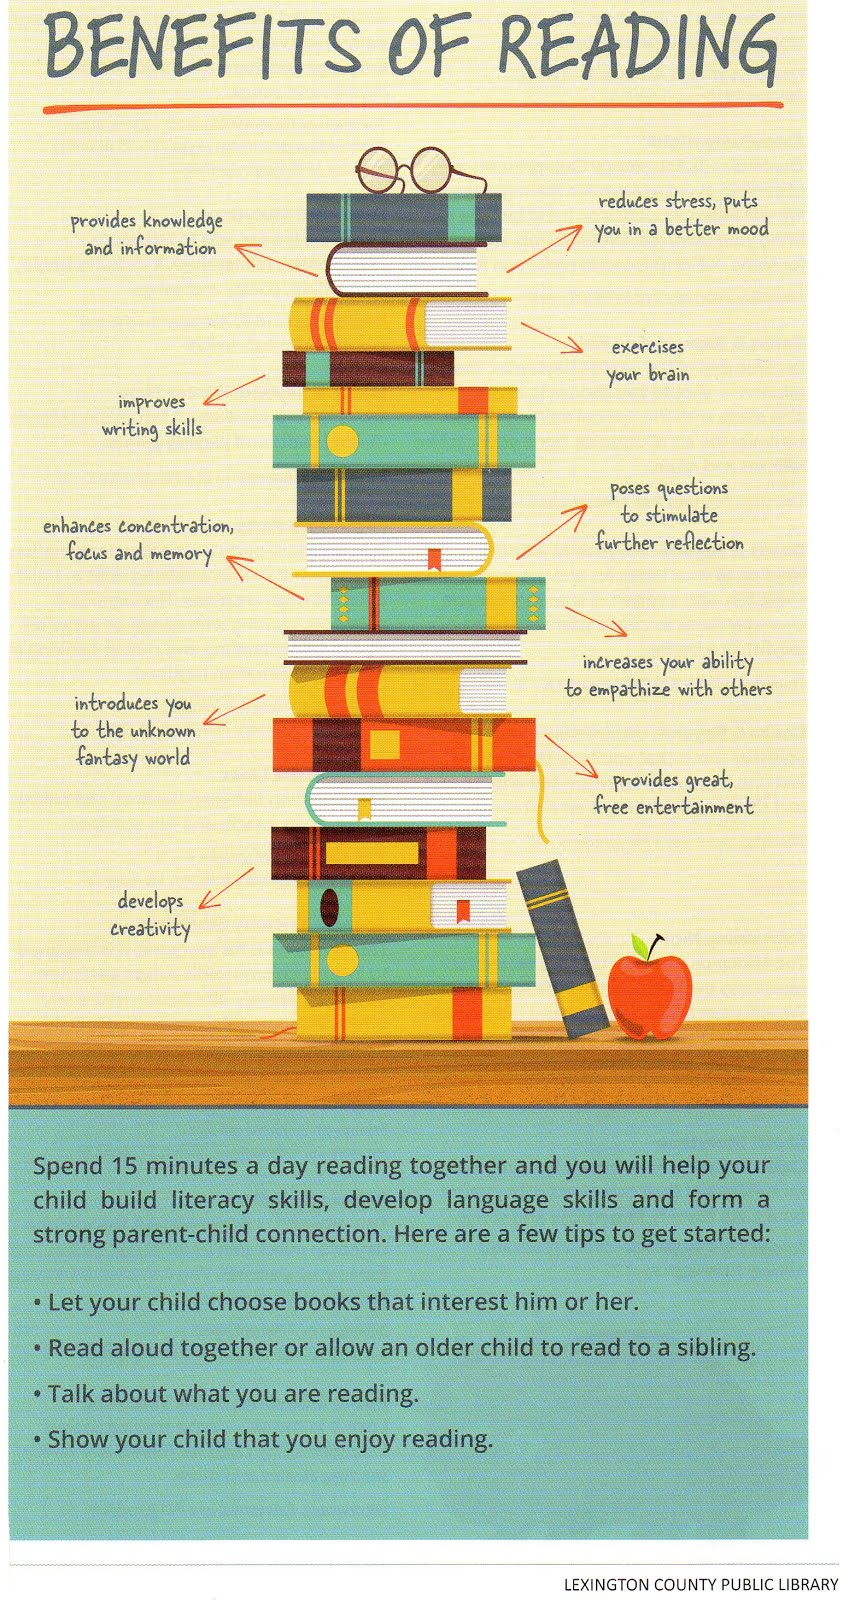 Benefits of Reading